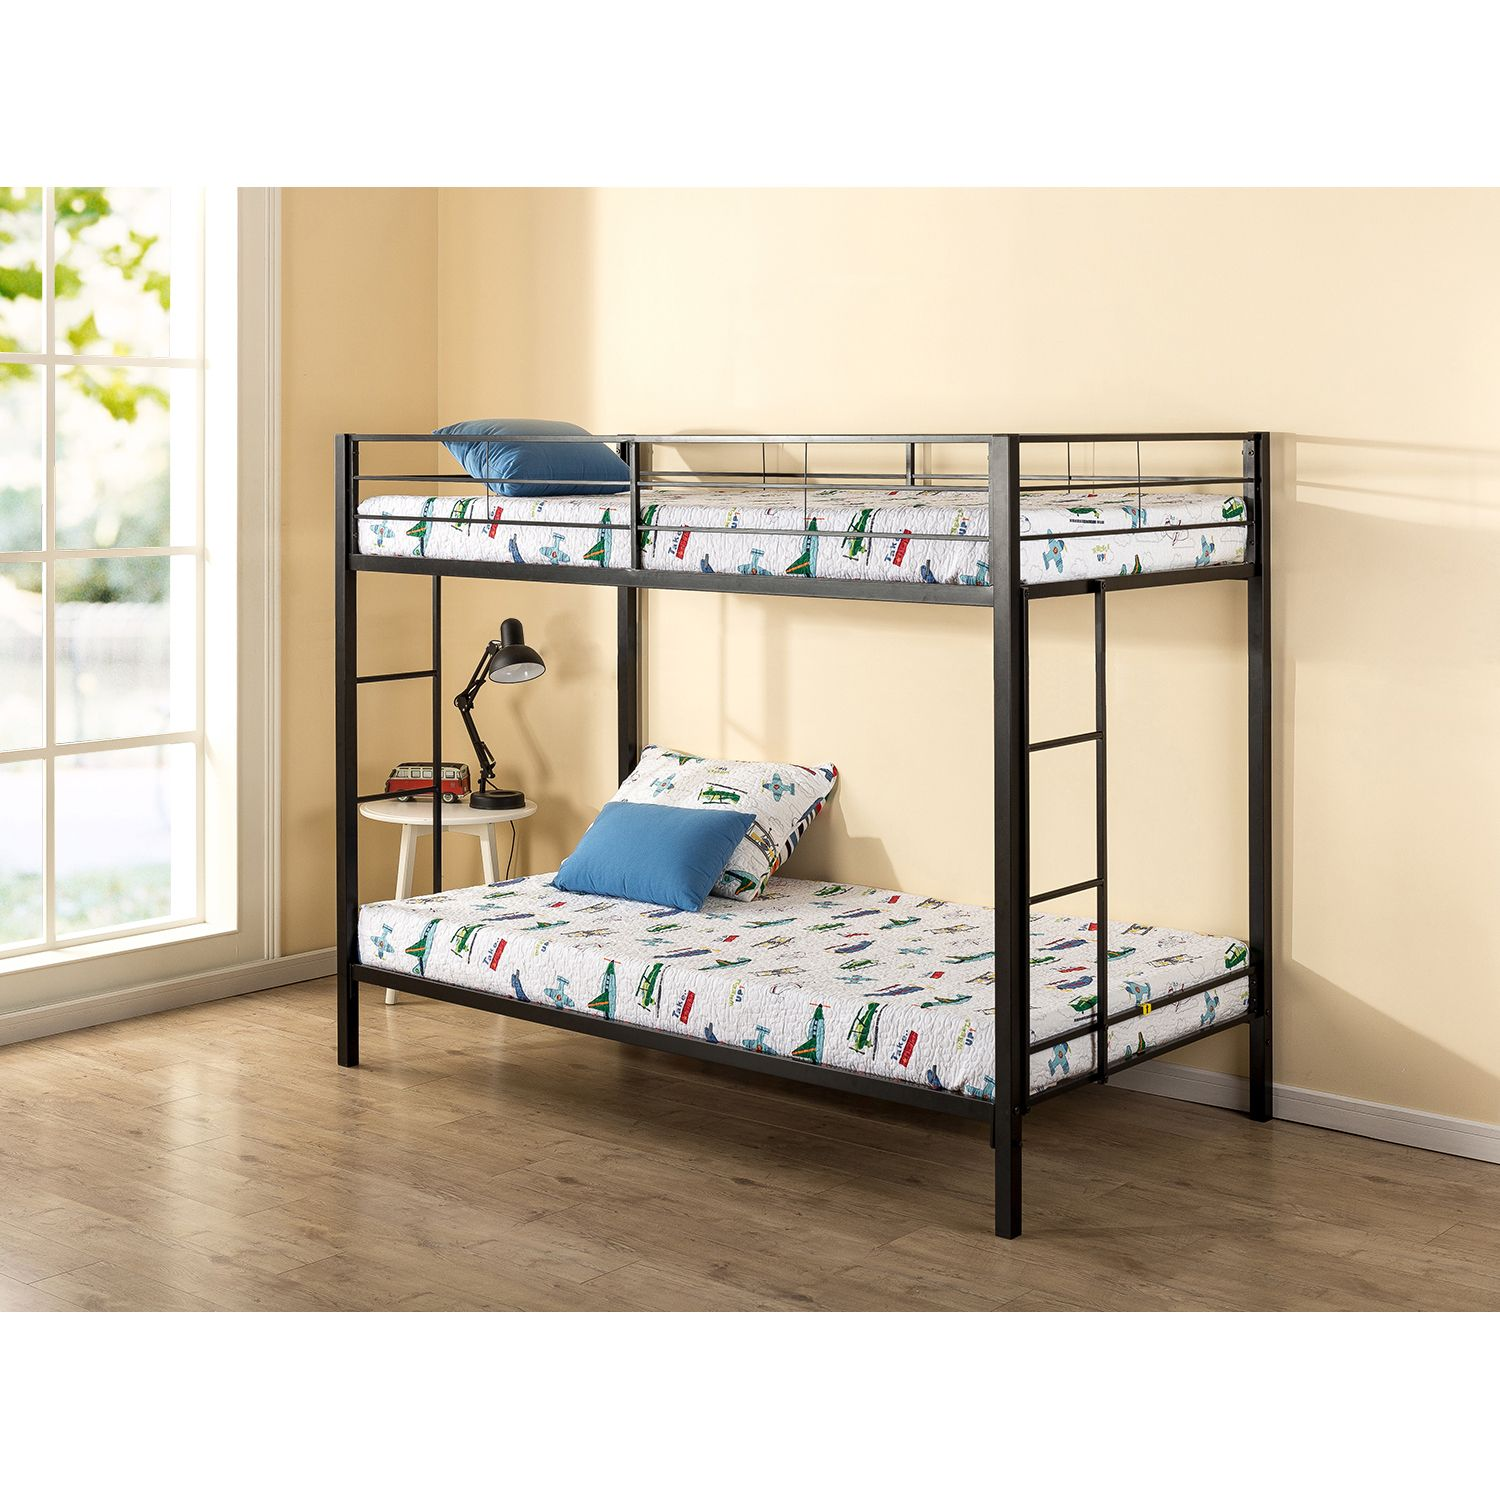 Buy Mainstays Twin Over Twin Metal Bunk Bed at